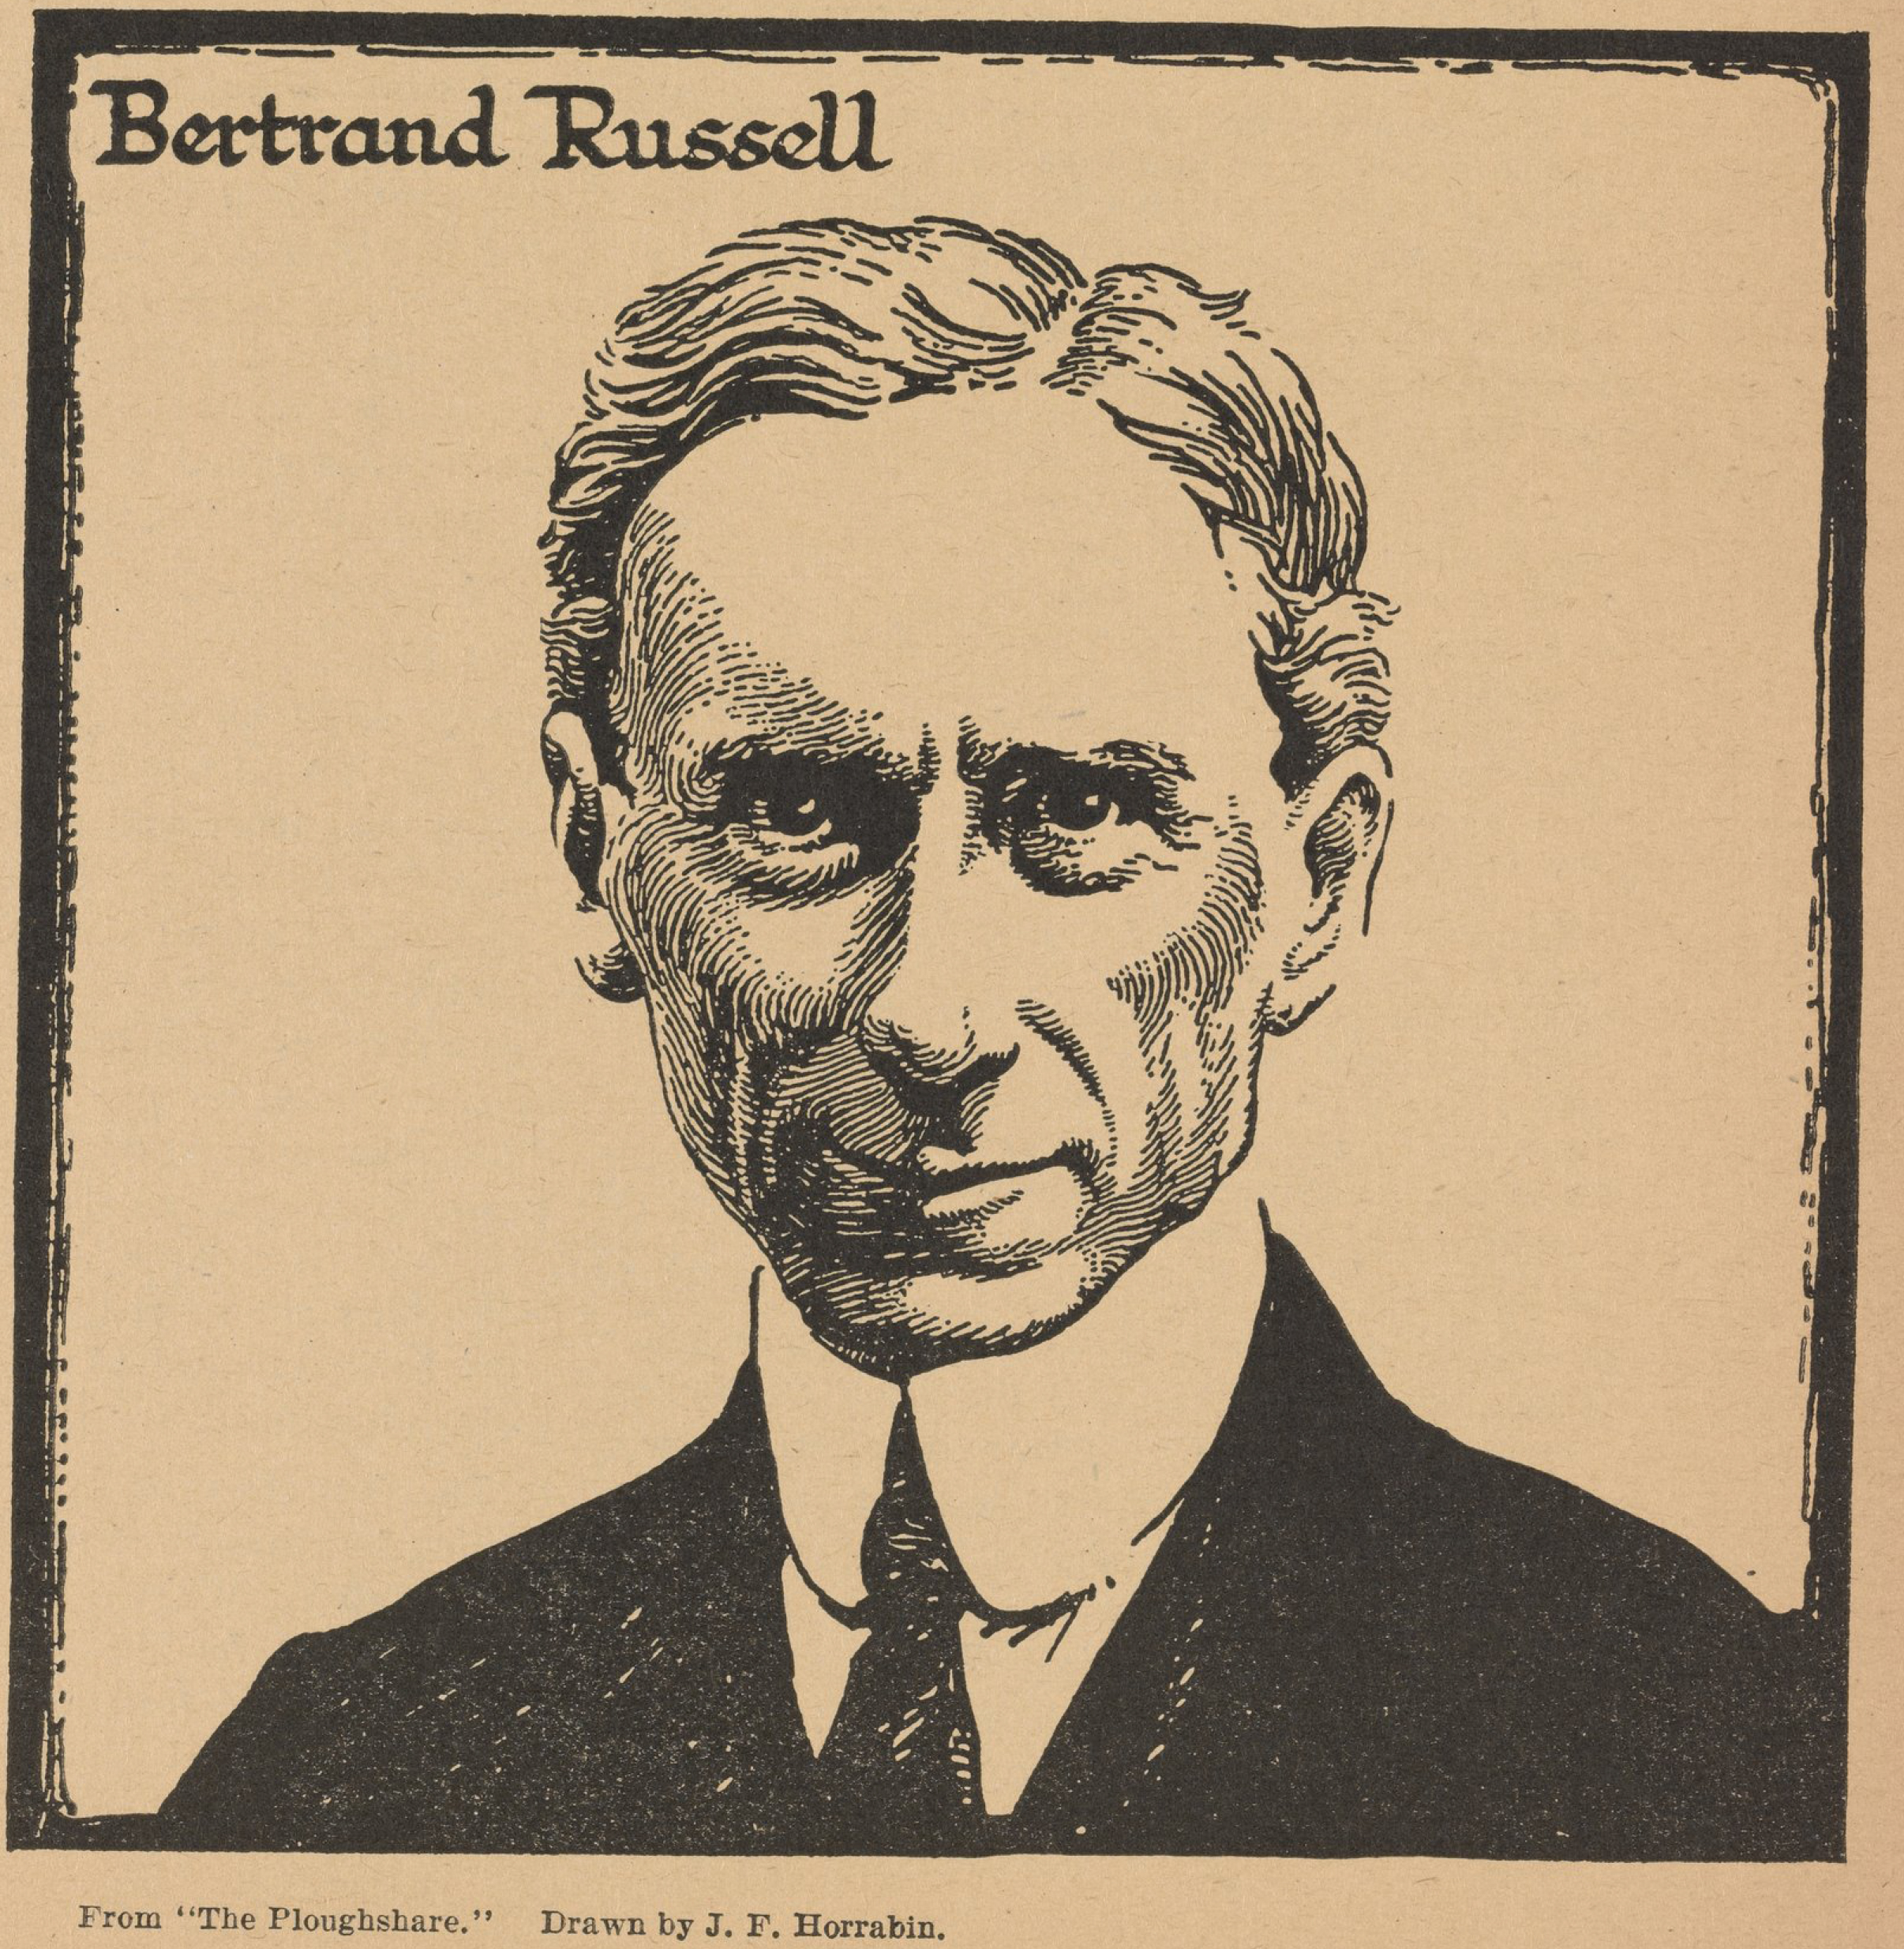 Bertrand Russell, by J. F. Horrabin.jpg https://commons.wikimedia.org